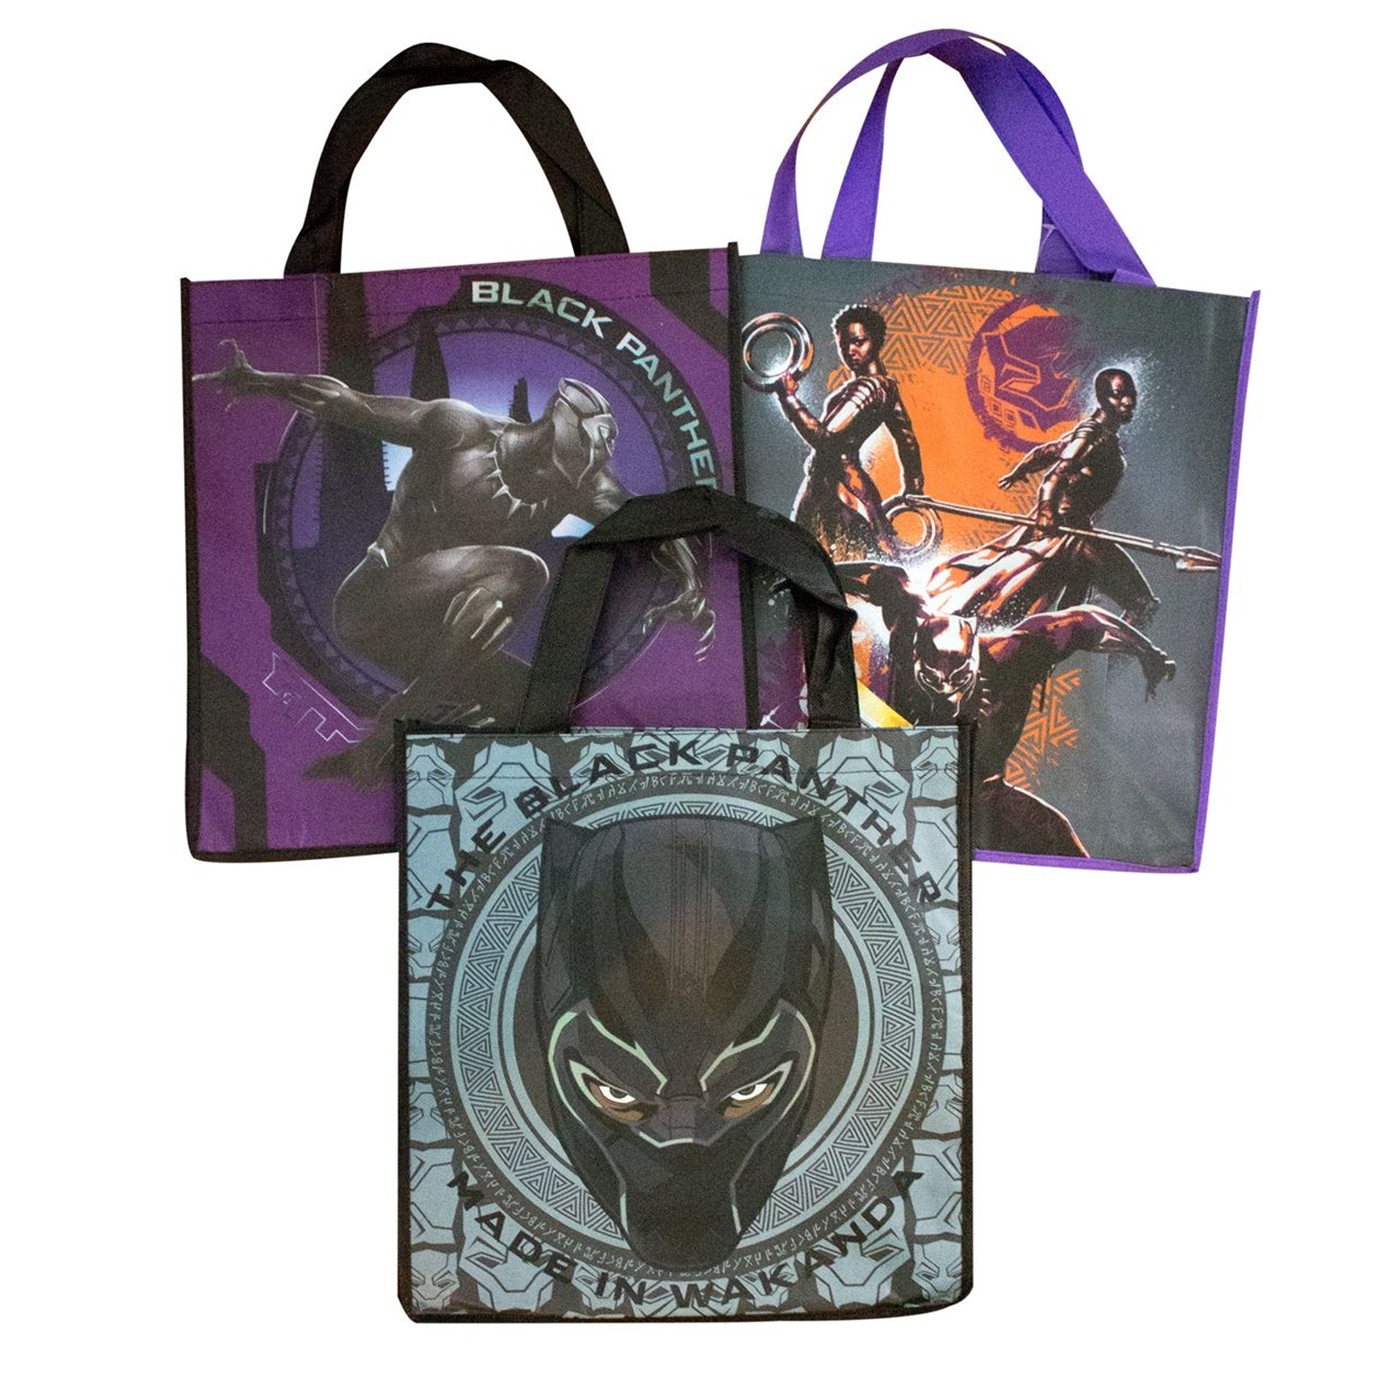 Black Panther Tote Bag 1 of 3